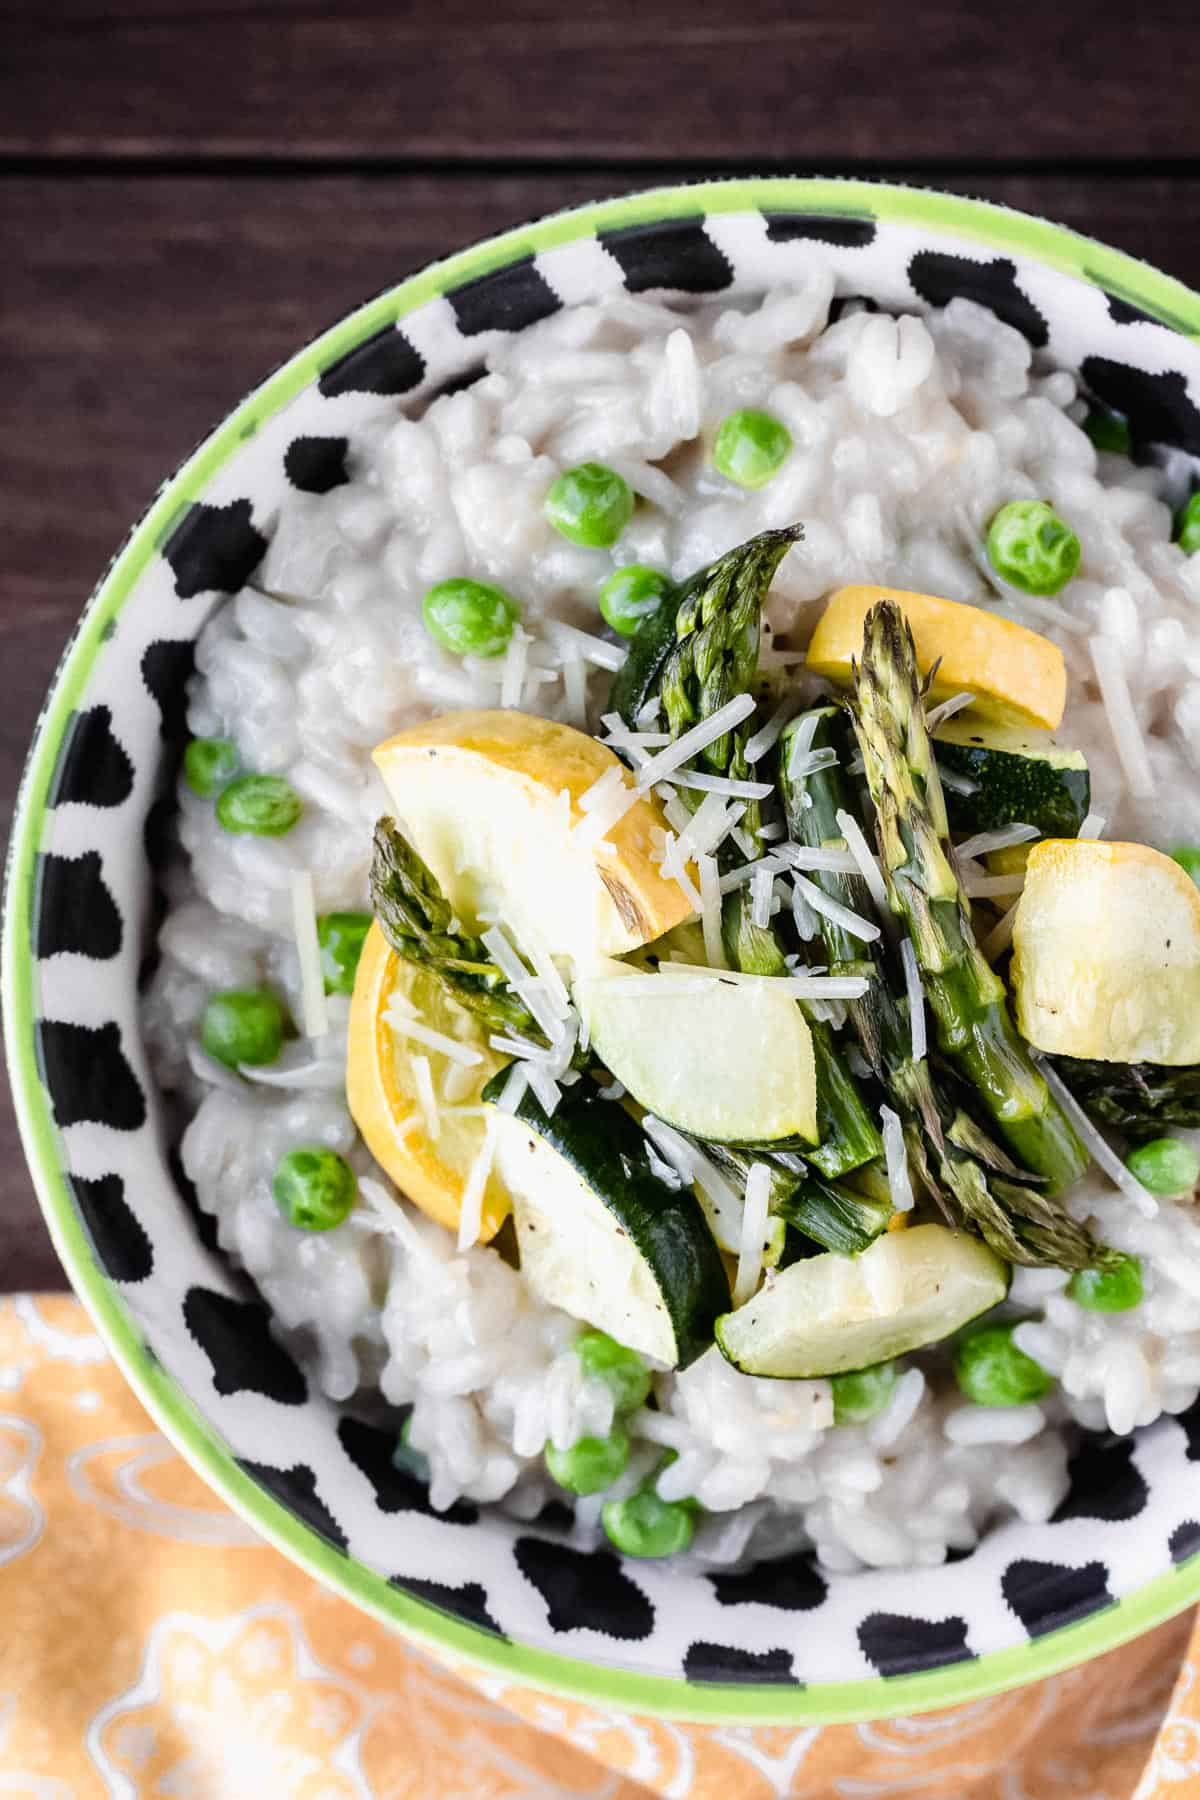 CLose up of spring vegetable risotto in a black, white and green bowl over a wood background with a yellow towel partially showing